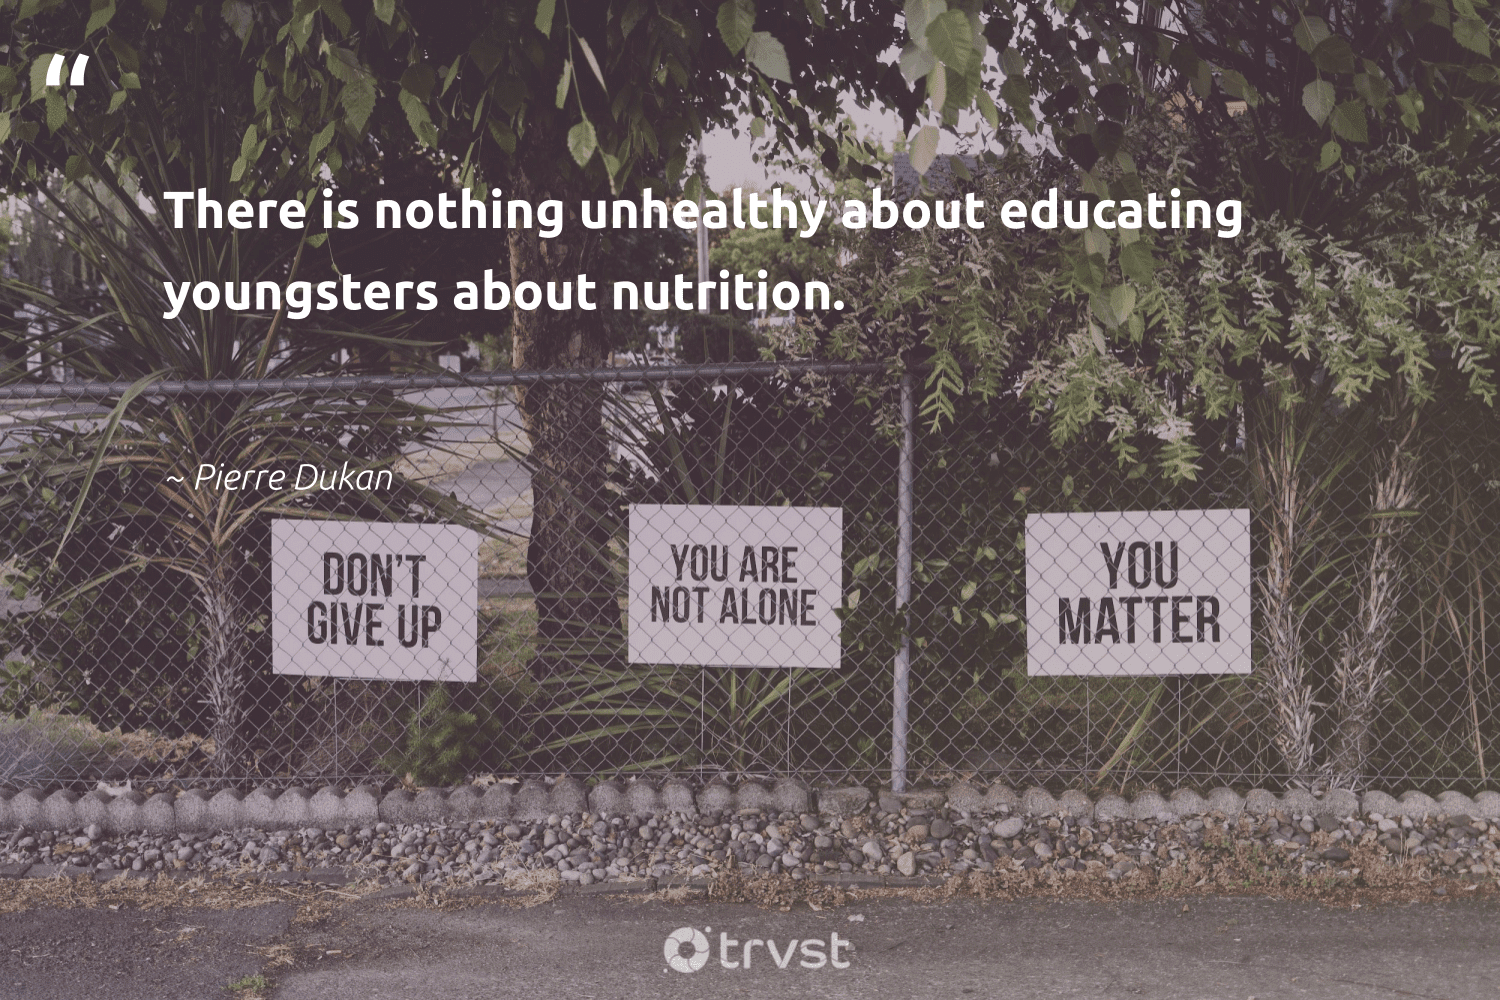 """""""There is nothing unhealthy about educating youngsters about nutrition.""""  - Pierre Dukan #trvst #quotes #eatclean #nutrition #healthylifestyle #changemakers #health #changetheworld #healthyfood #begreat #mindset #dogood"""